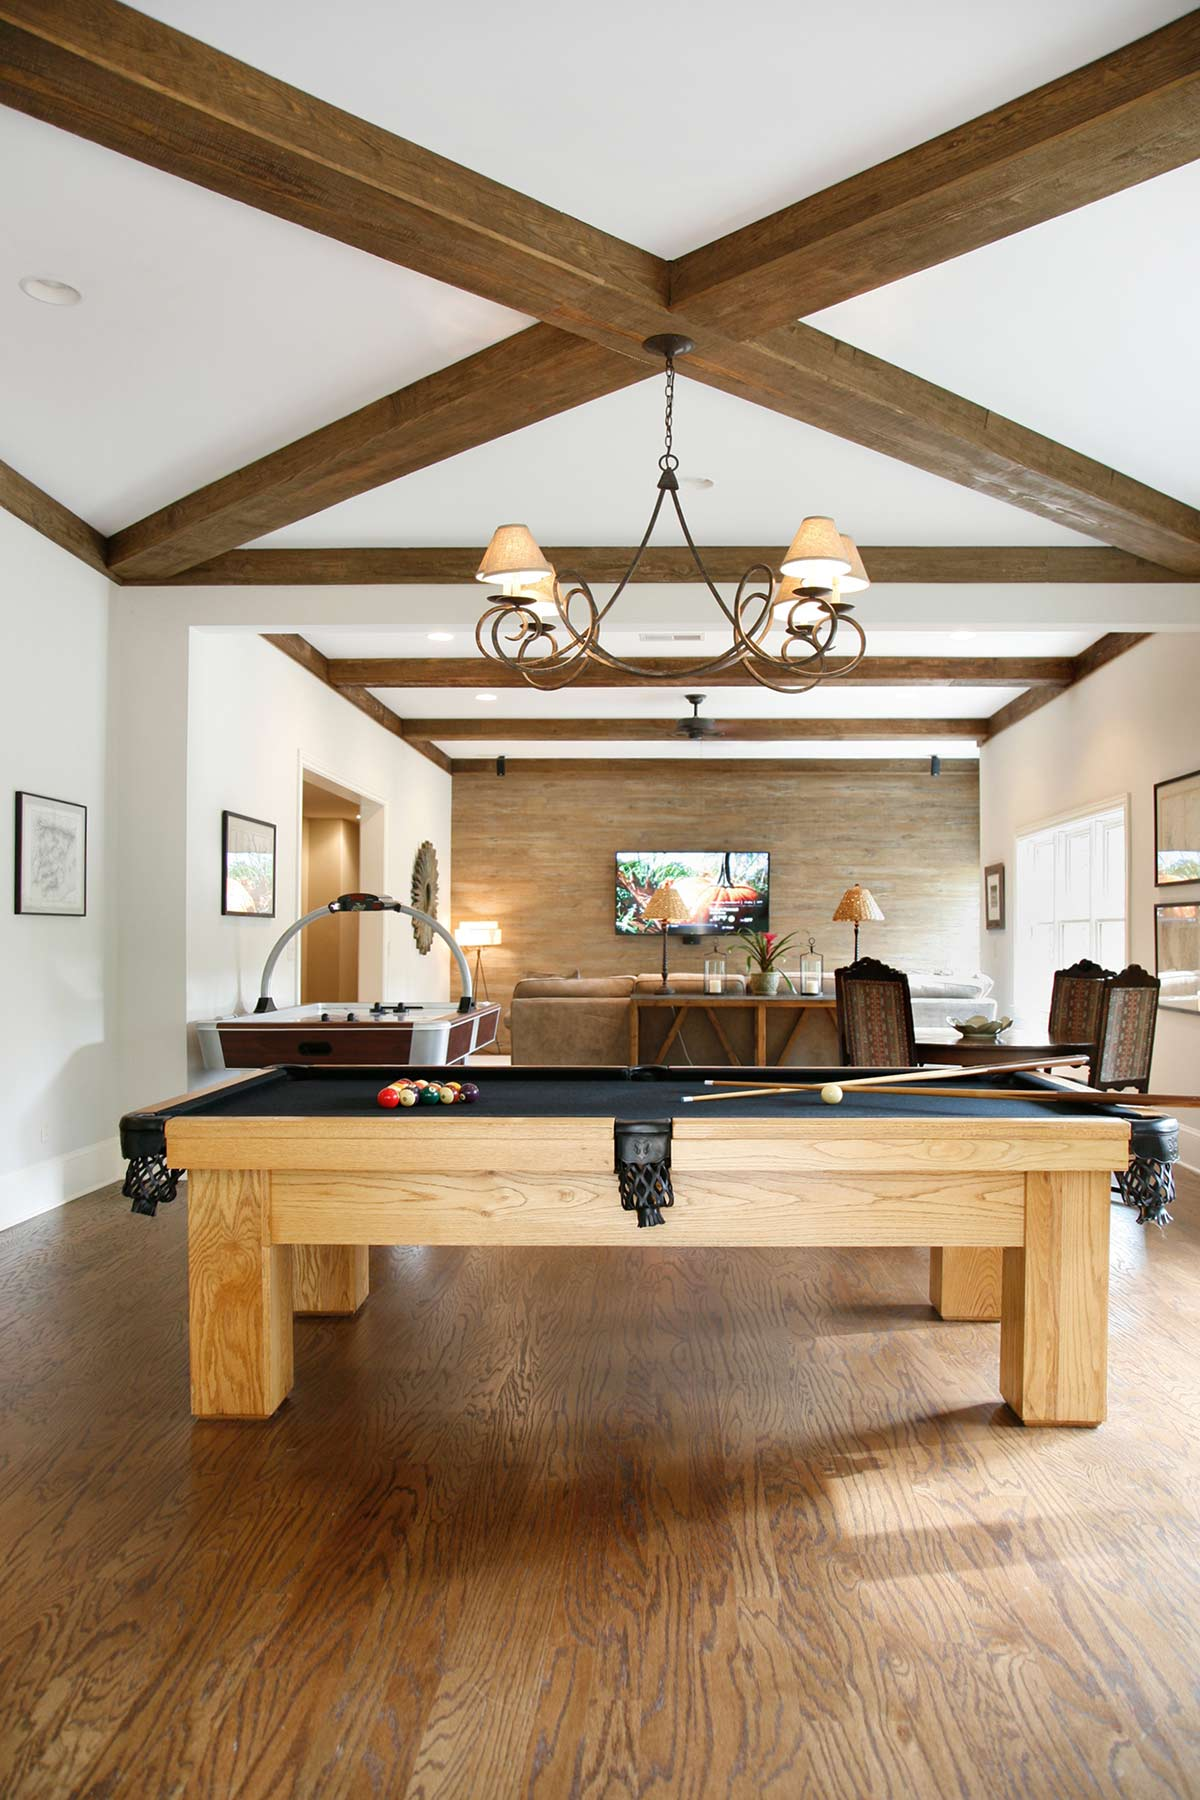 Basement ceiling with wood beams